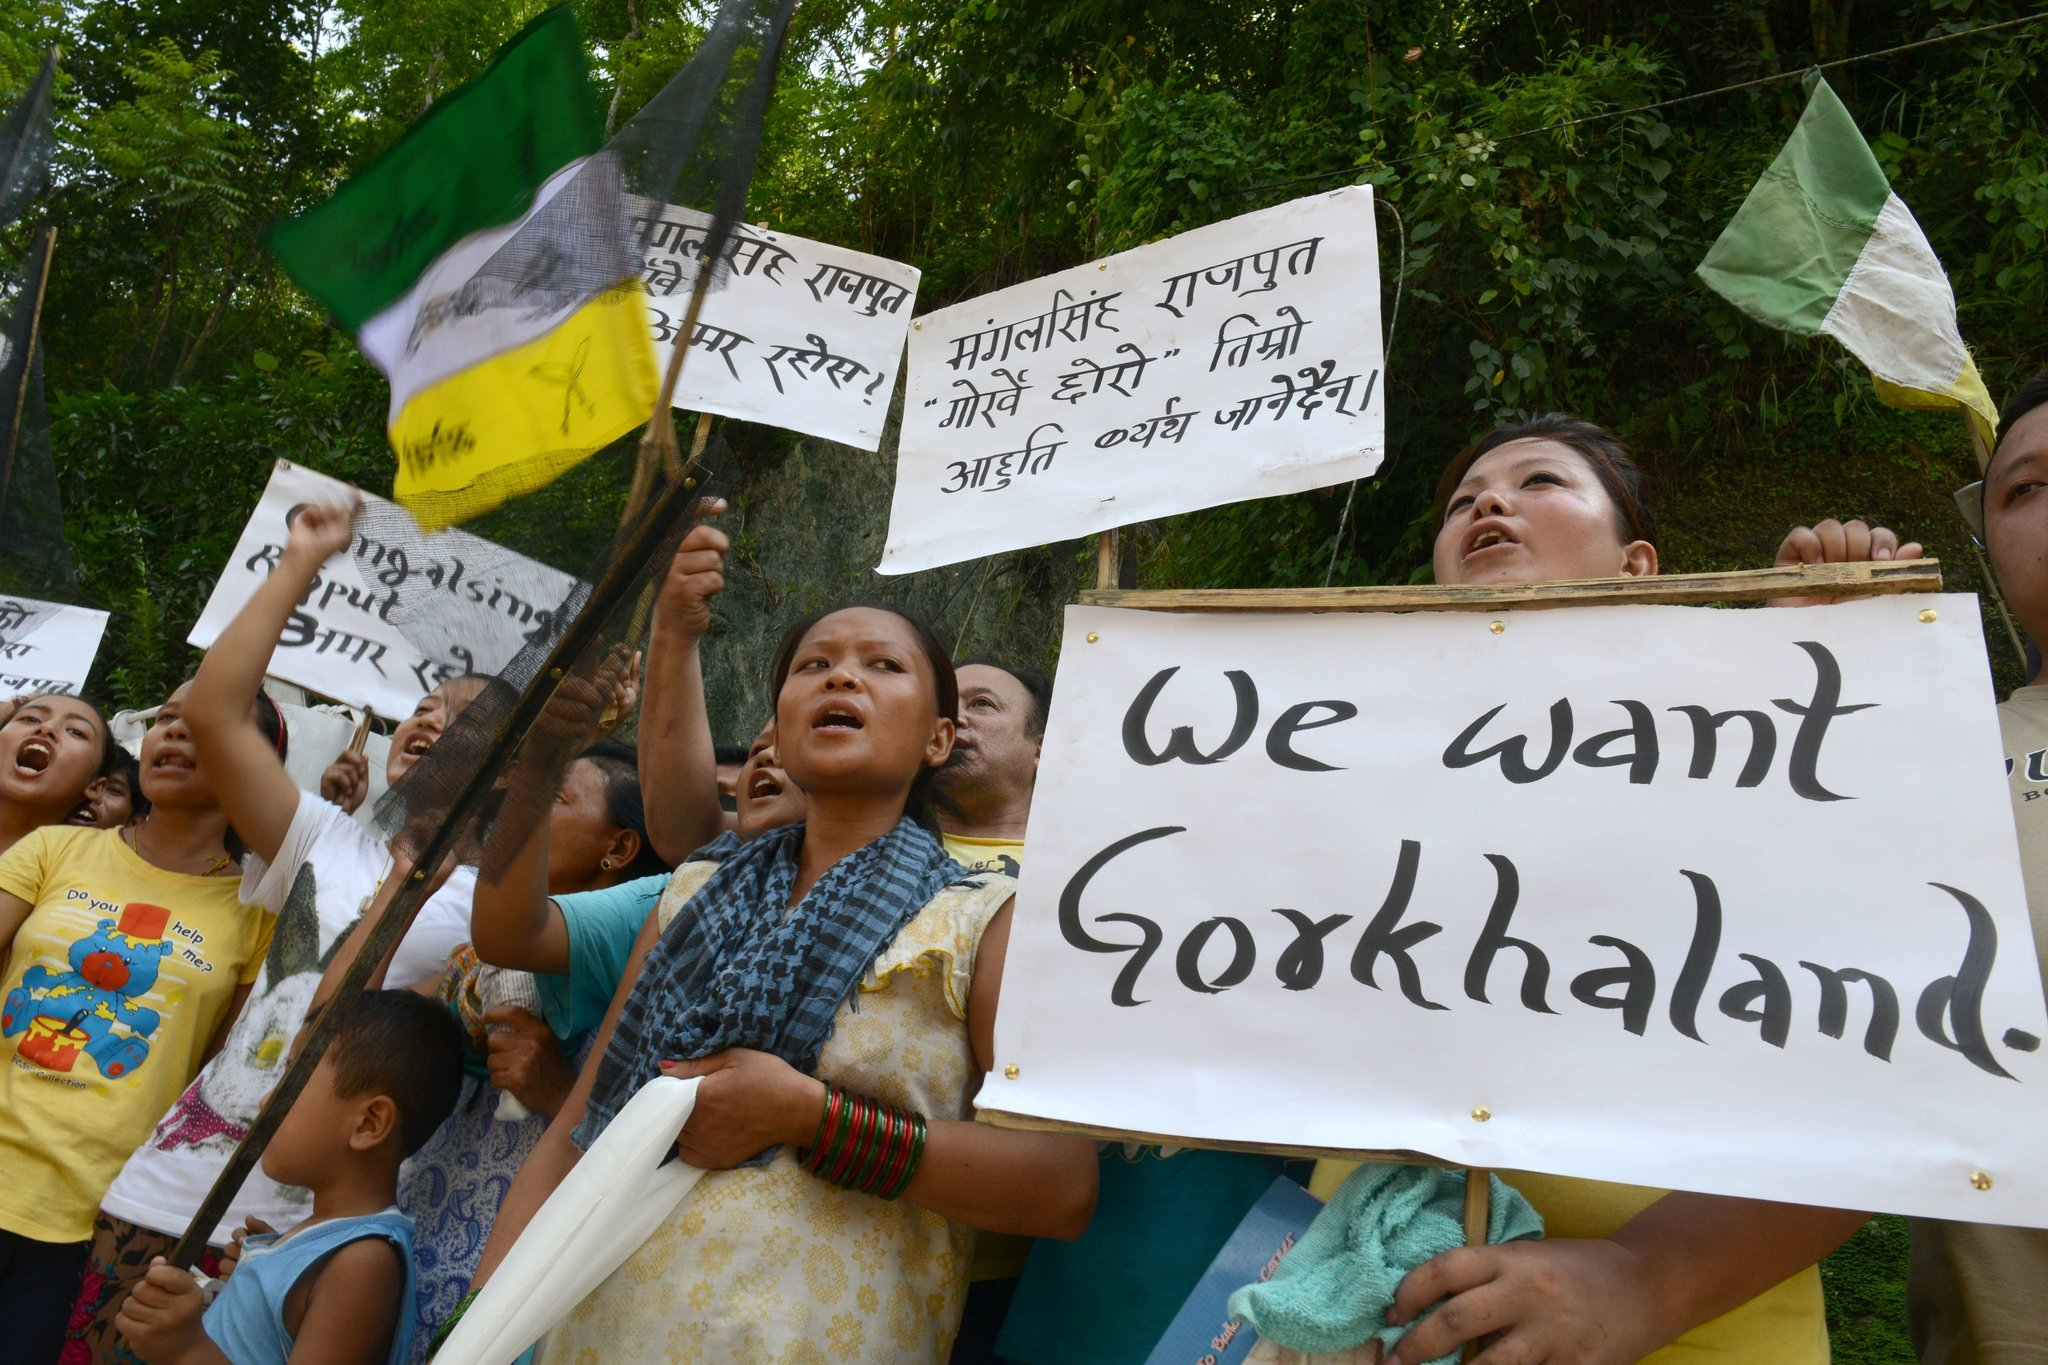 Bhutan assures India on infiltration into Gorkhaland movement